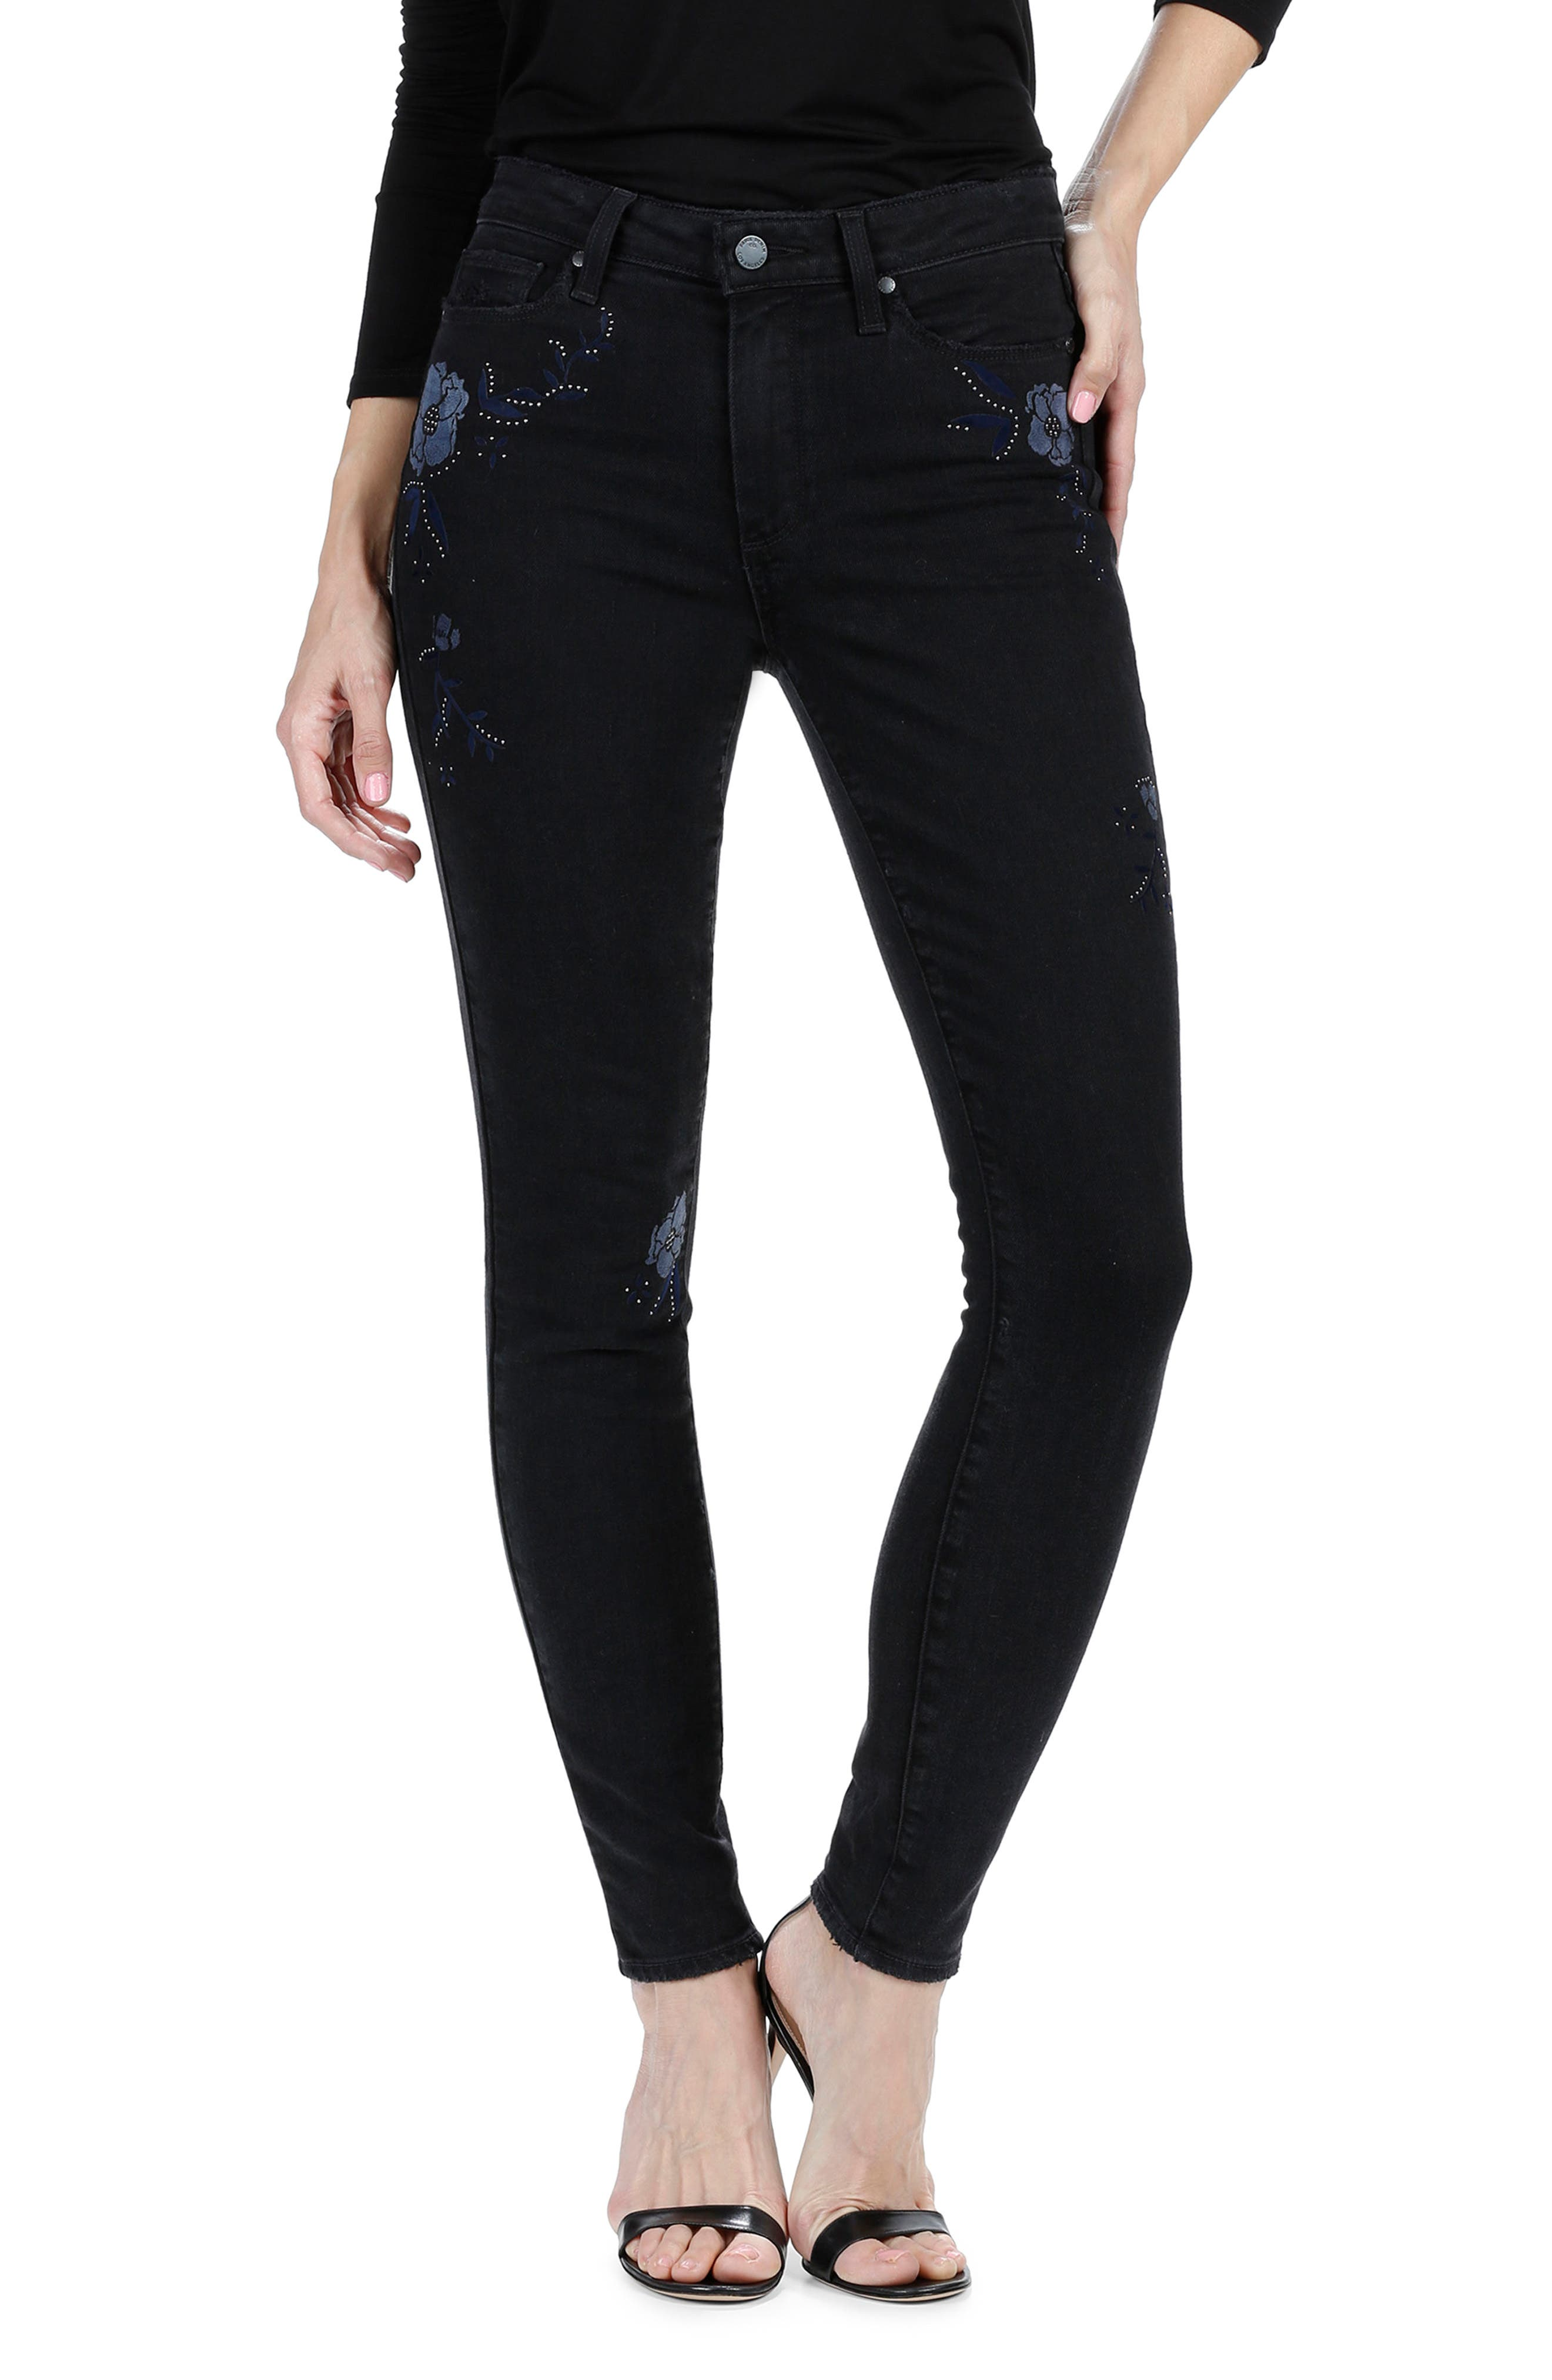 Alternate Image 1 Selected - PAIGE Hoxton High Waist Ultra Skinny Jeans (Floral Noir)